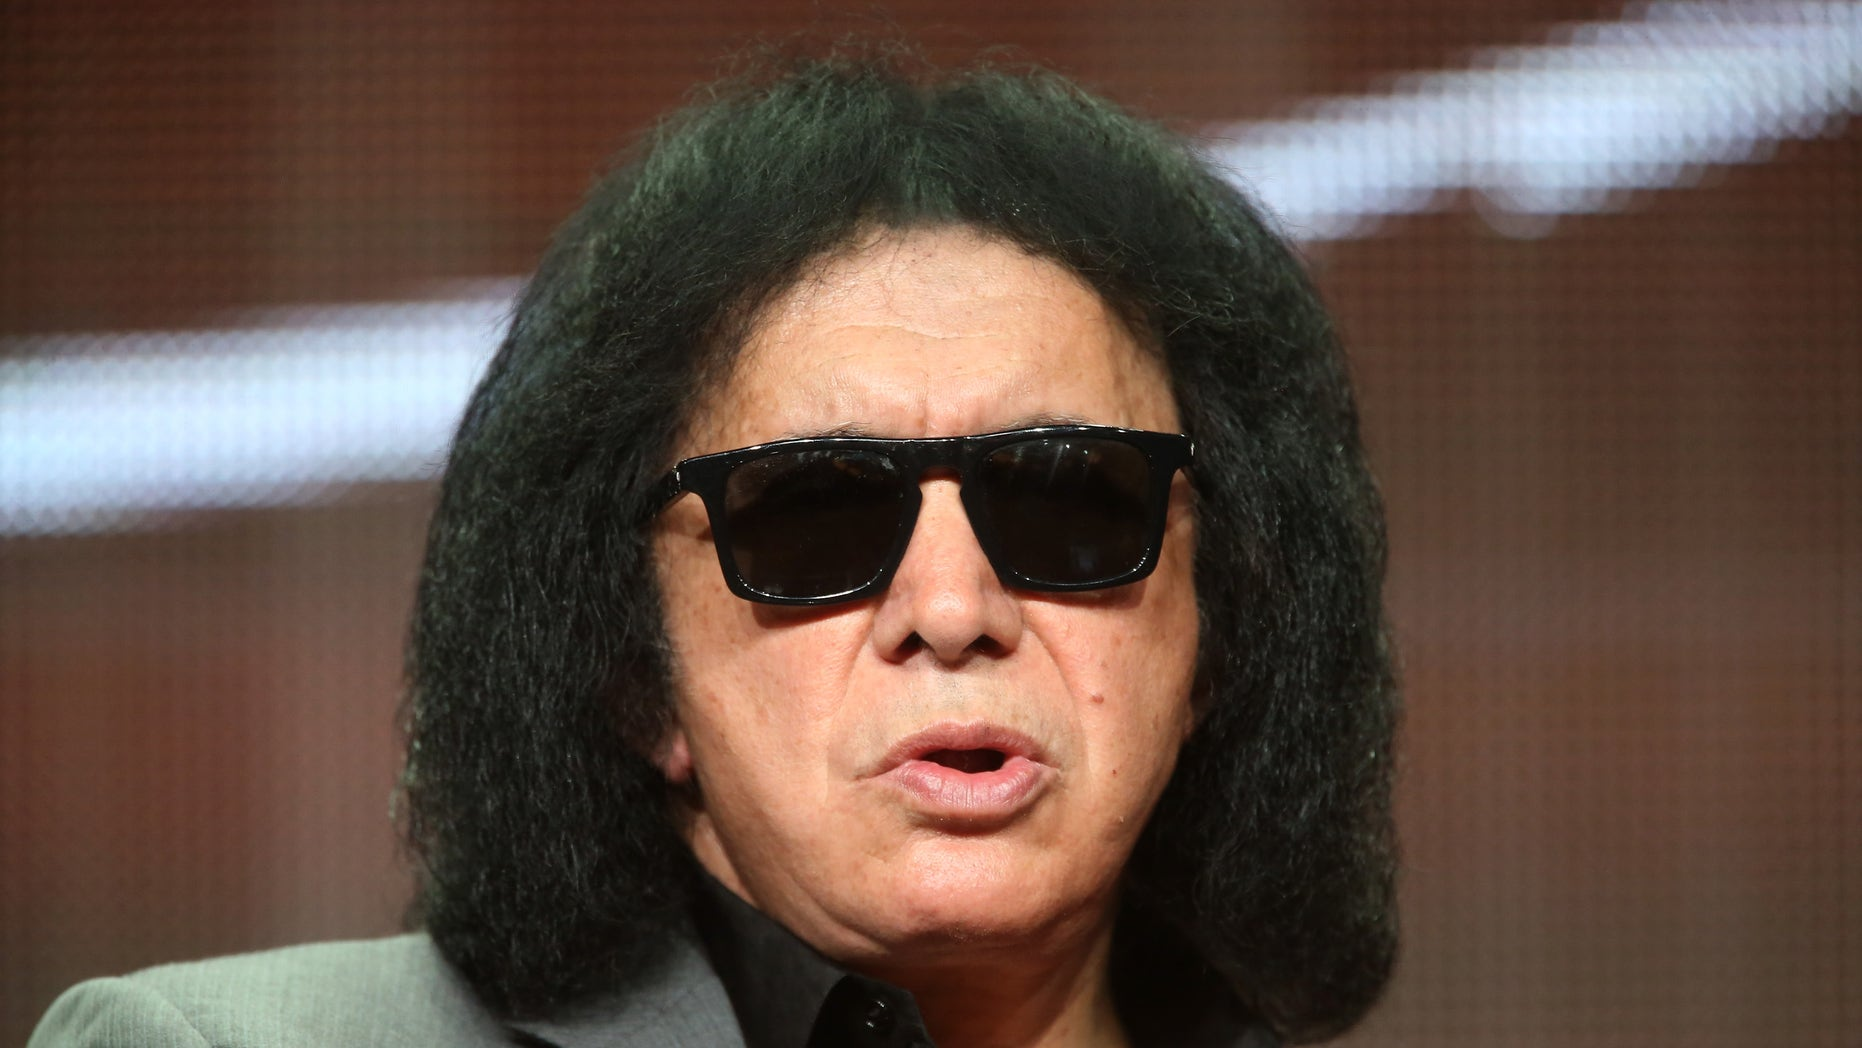 """BEVERLY HILLS, CA - JULY 11:  TV personality/musician Gene Simmons speaks onstage at the """"4th and Loud"""" panel during the AMC Networks portion of the 2014 Summer Television Critics Association at The Beverly Hilton Hotel on July 11, 2014 in Beverly Hills, California.  (Photo by Frederick M. Brown/Getty Images)"""